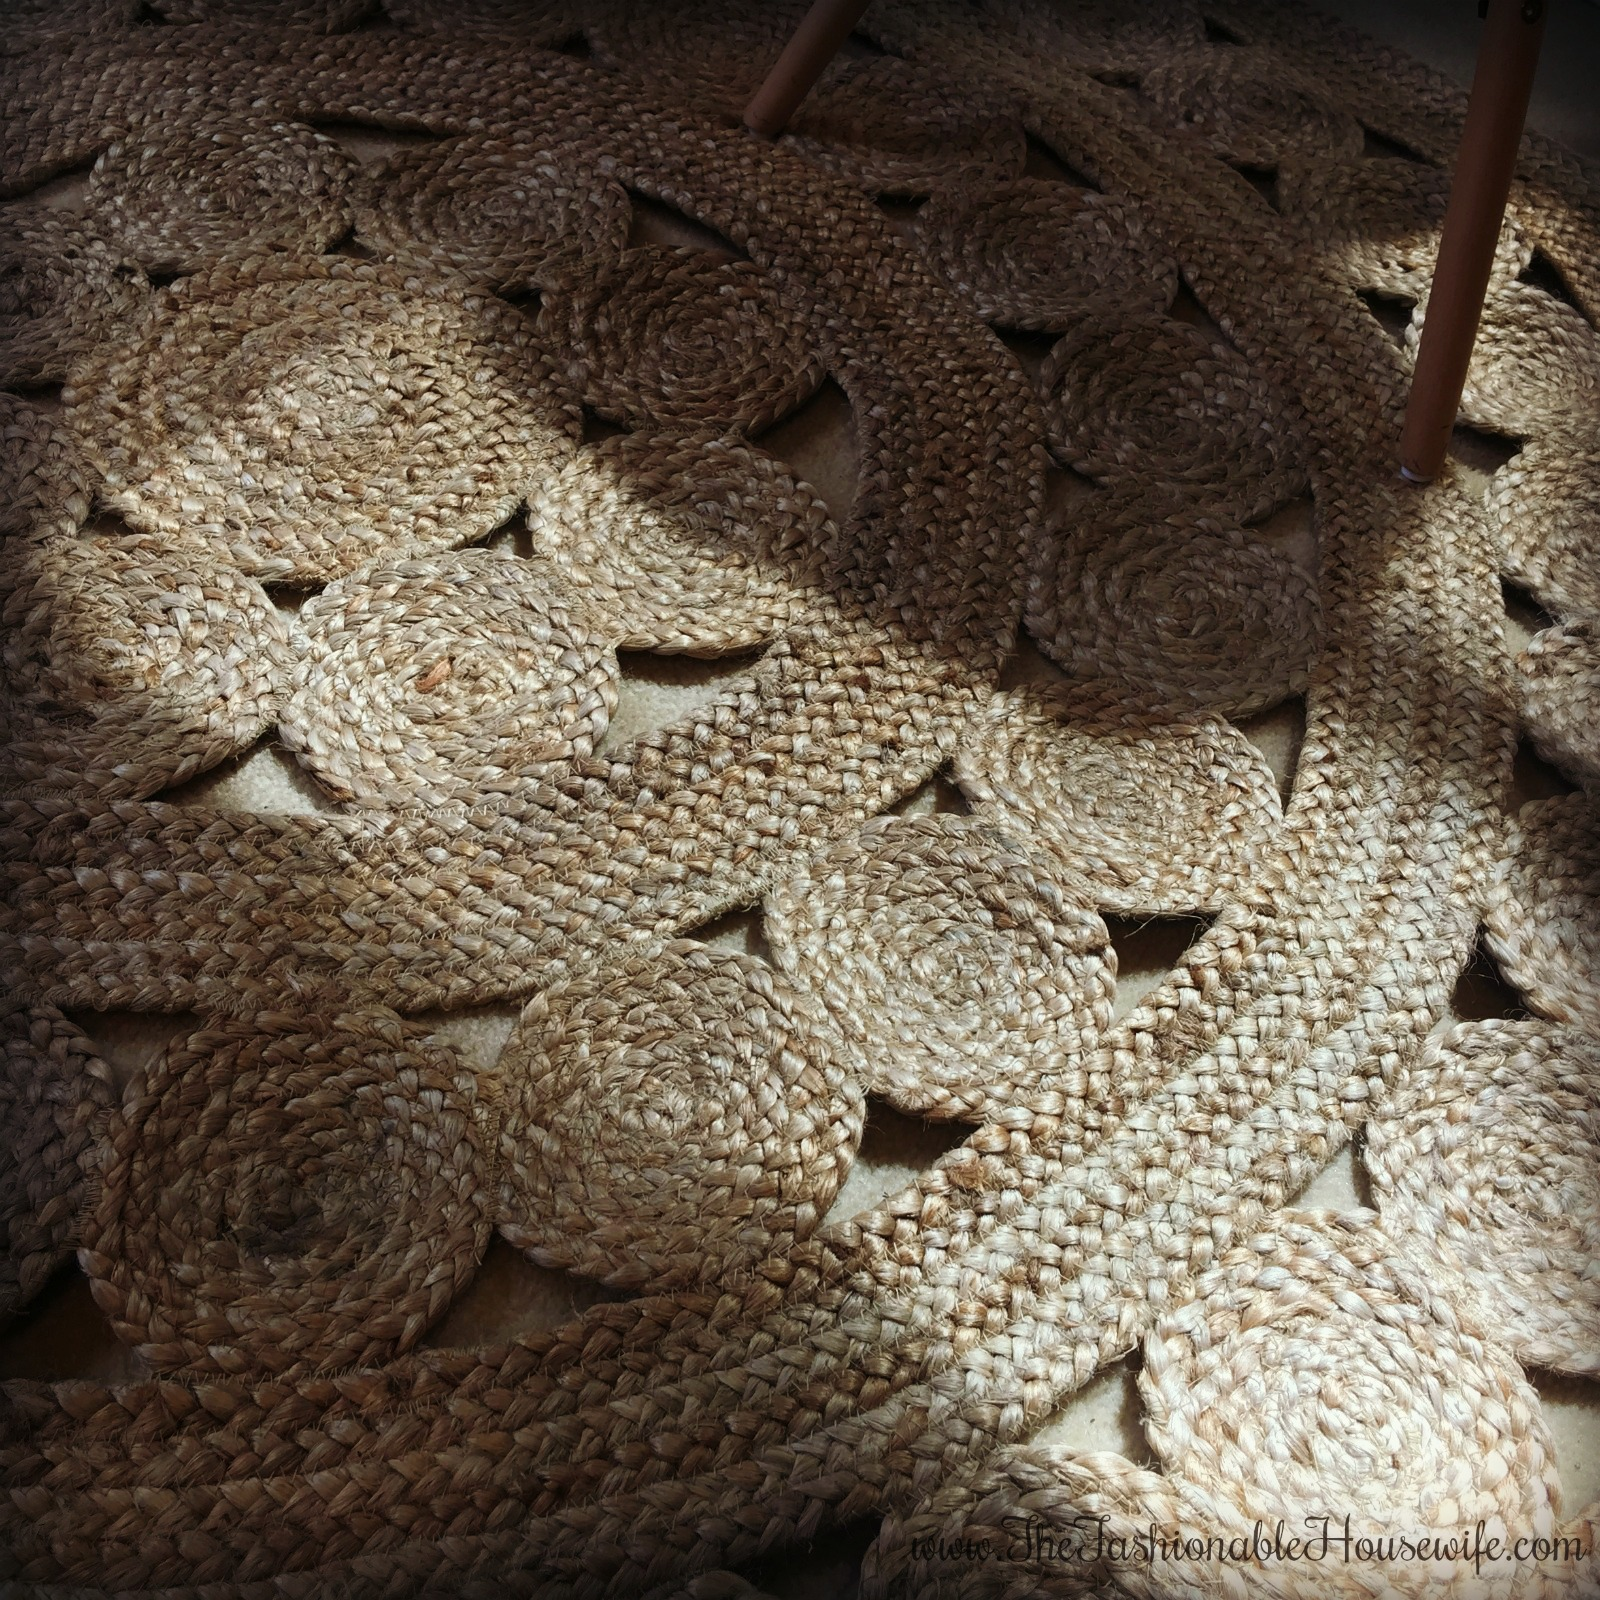 Serena Lily Love The Burlap Look Of The: Home Decor: Bedroom Update With Serena & Lily Jute Rug